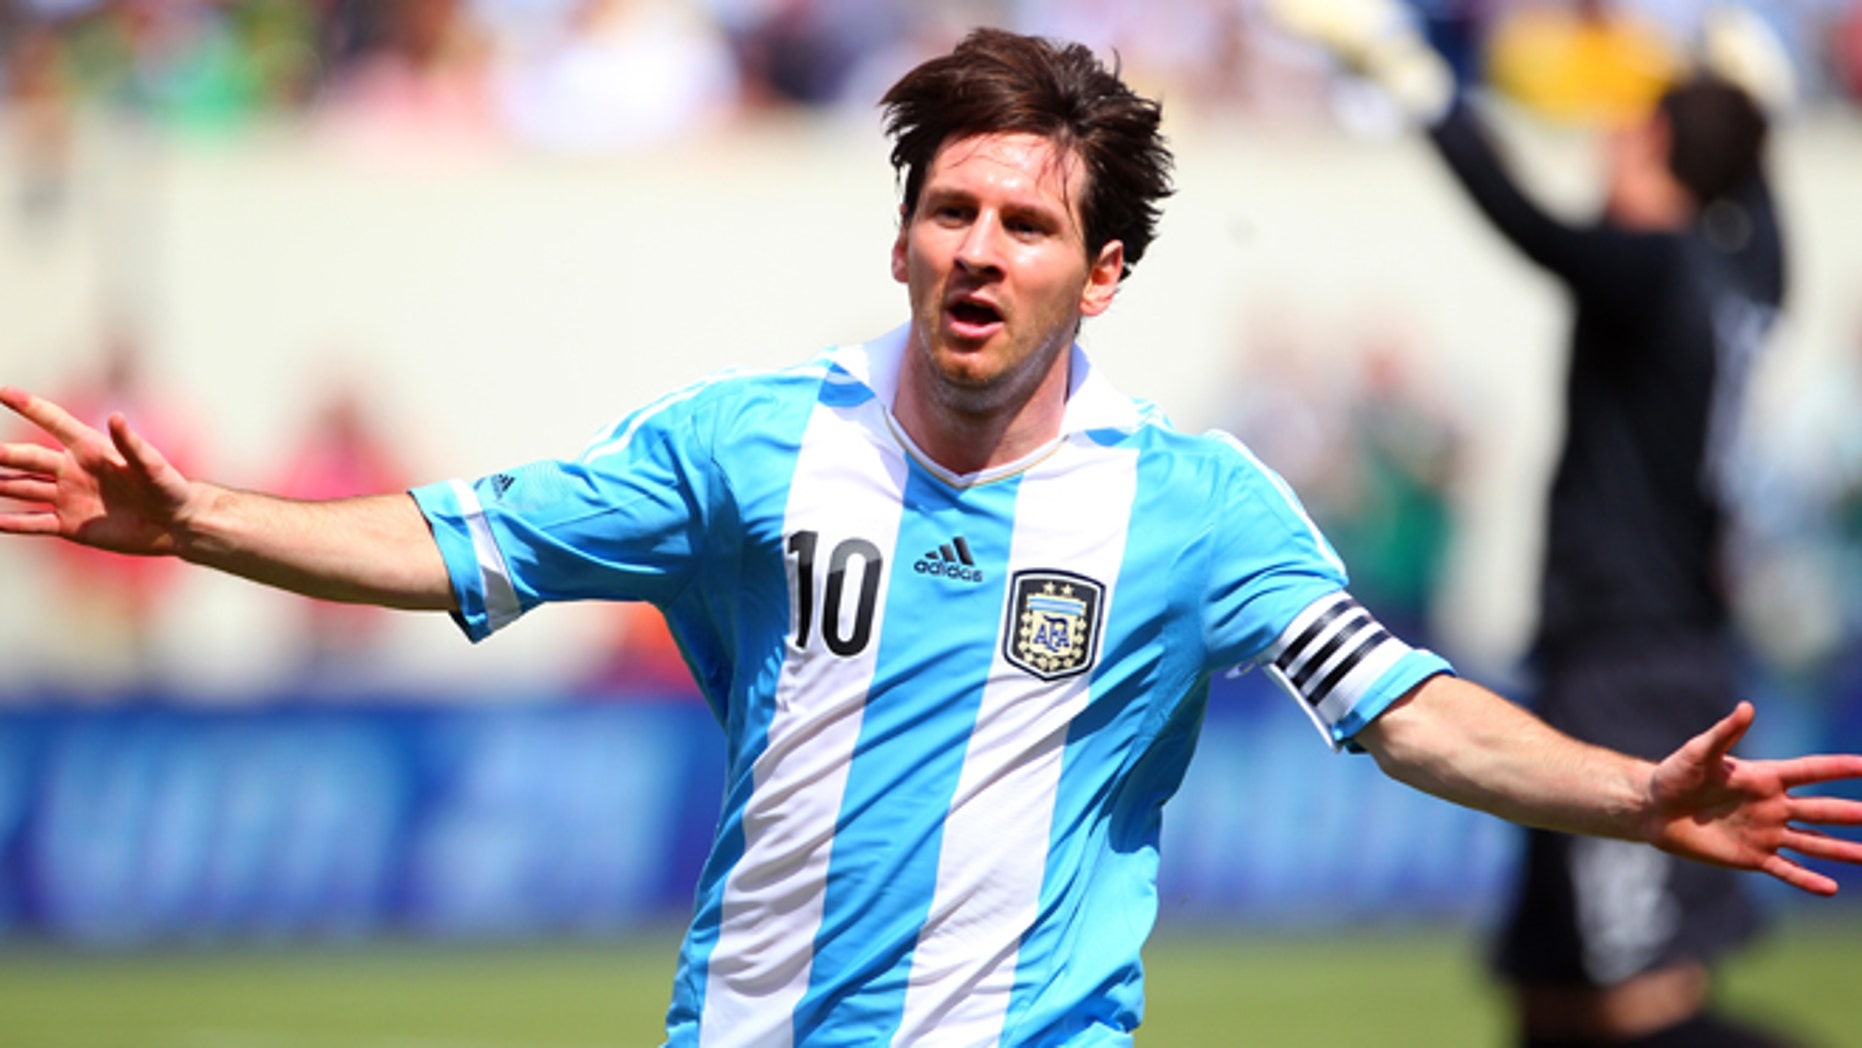 Lionel Messi on June 9, 2012 at MetLife Stadium in East Rutherford, New Jersey.